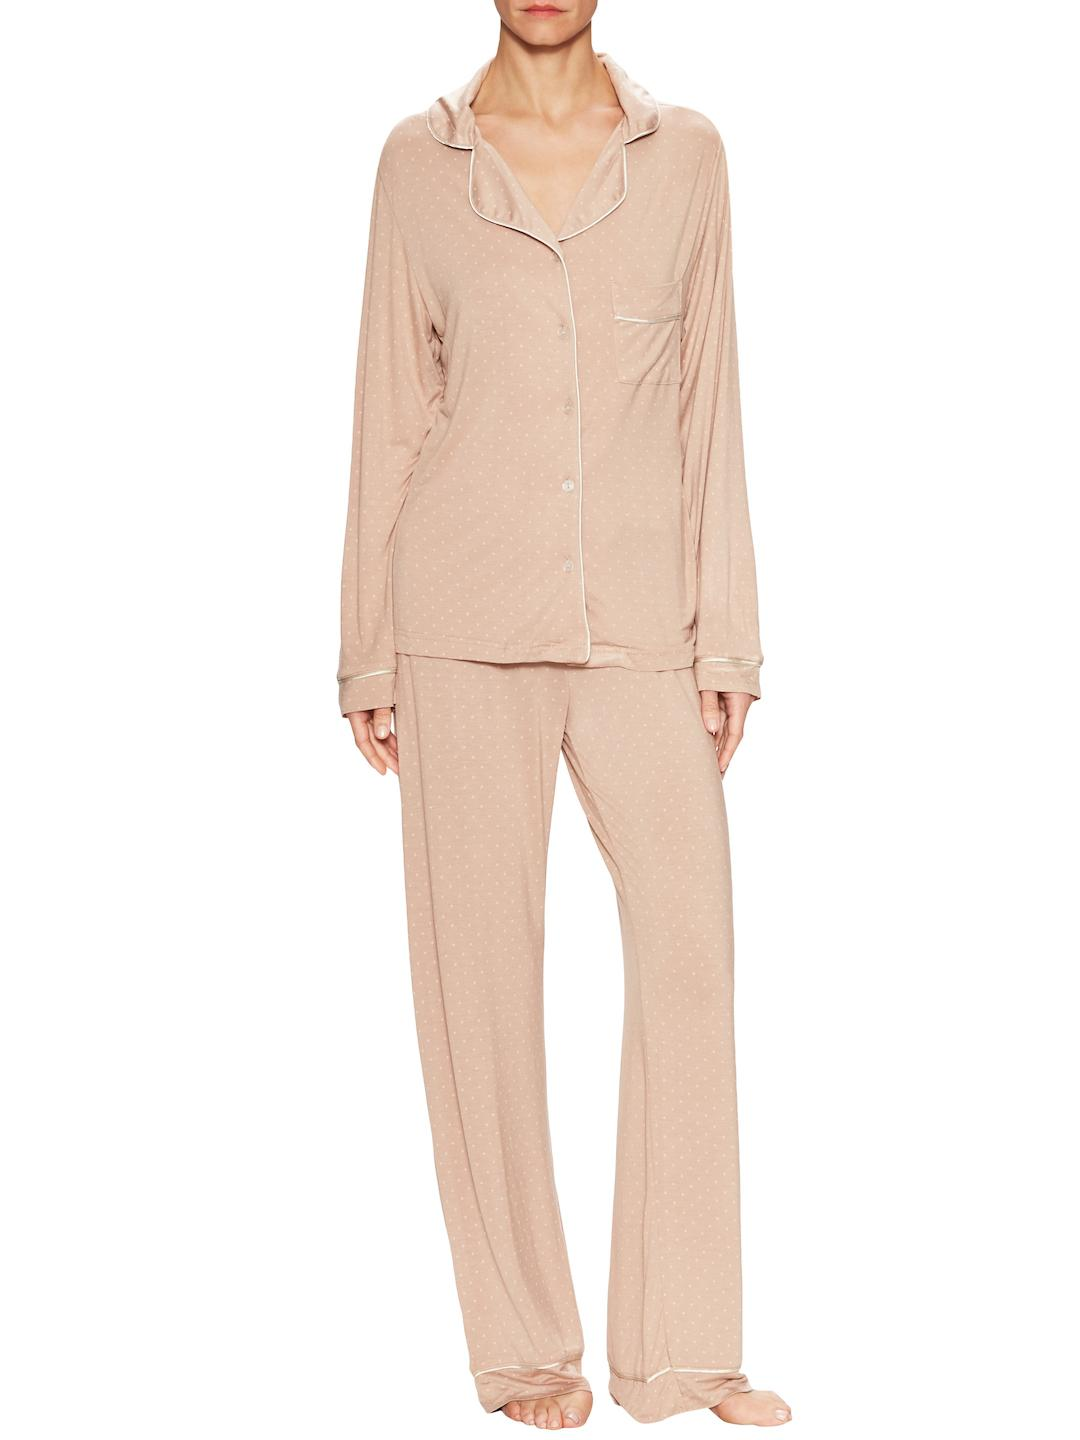 91fa6d22991e Lyst - Blush Lingerie Collette Relaxed Fit Pajama Set in Natural